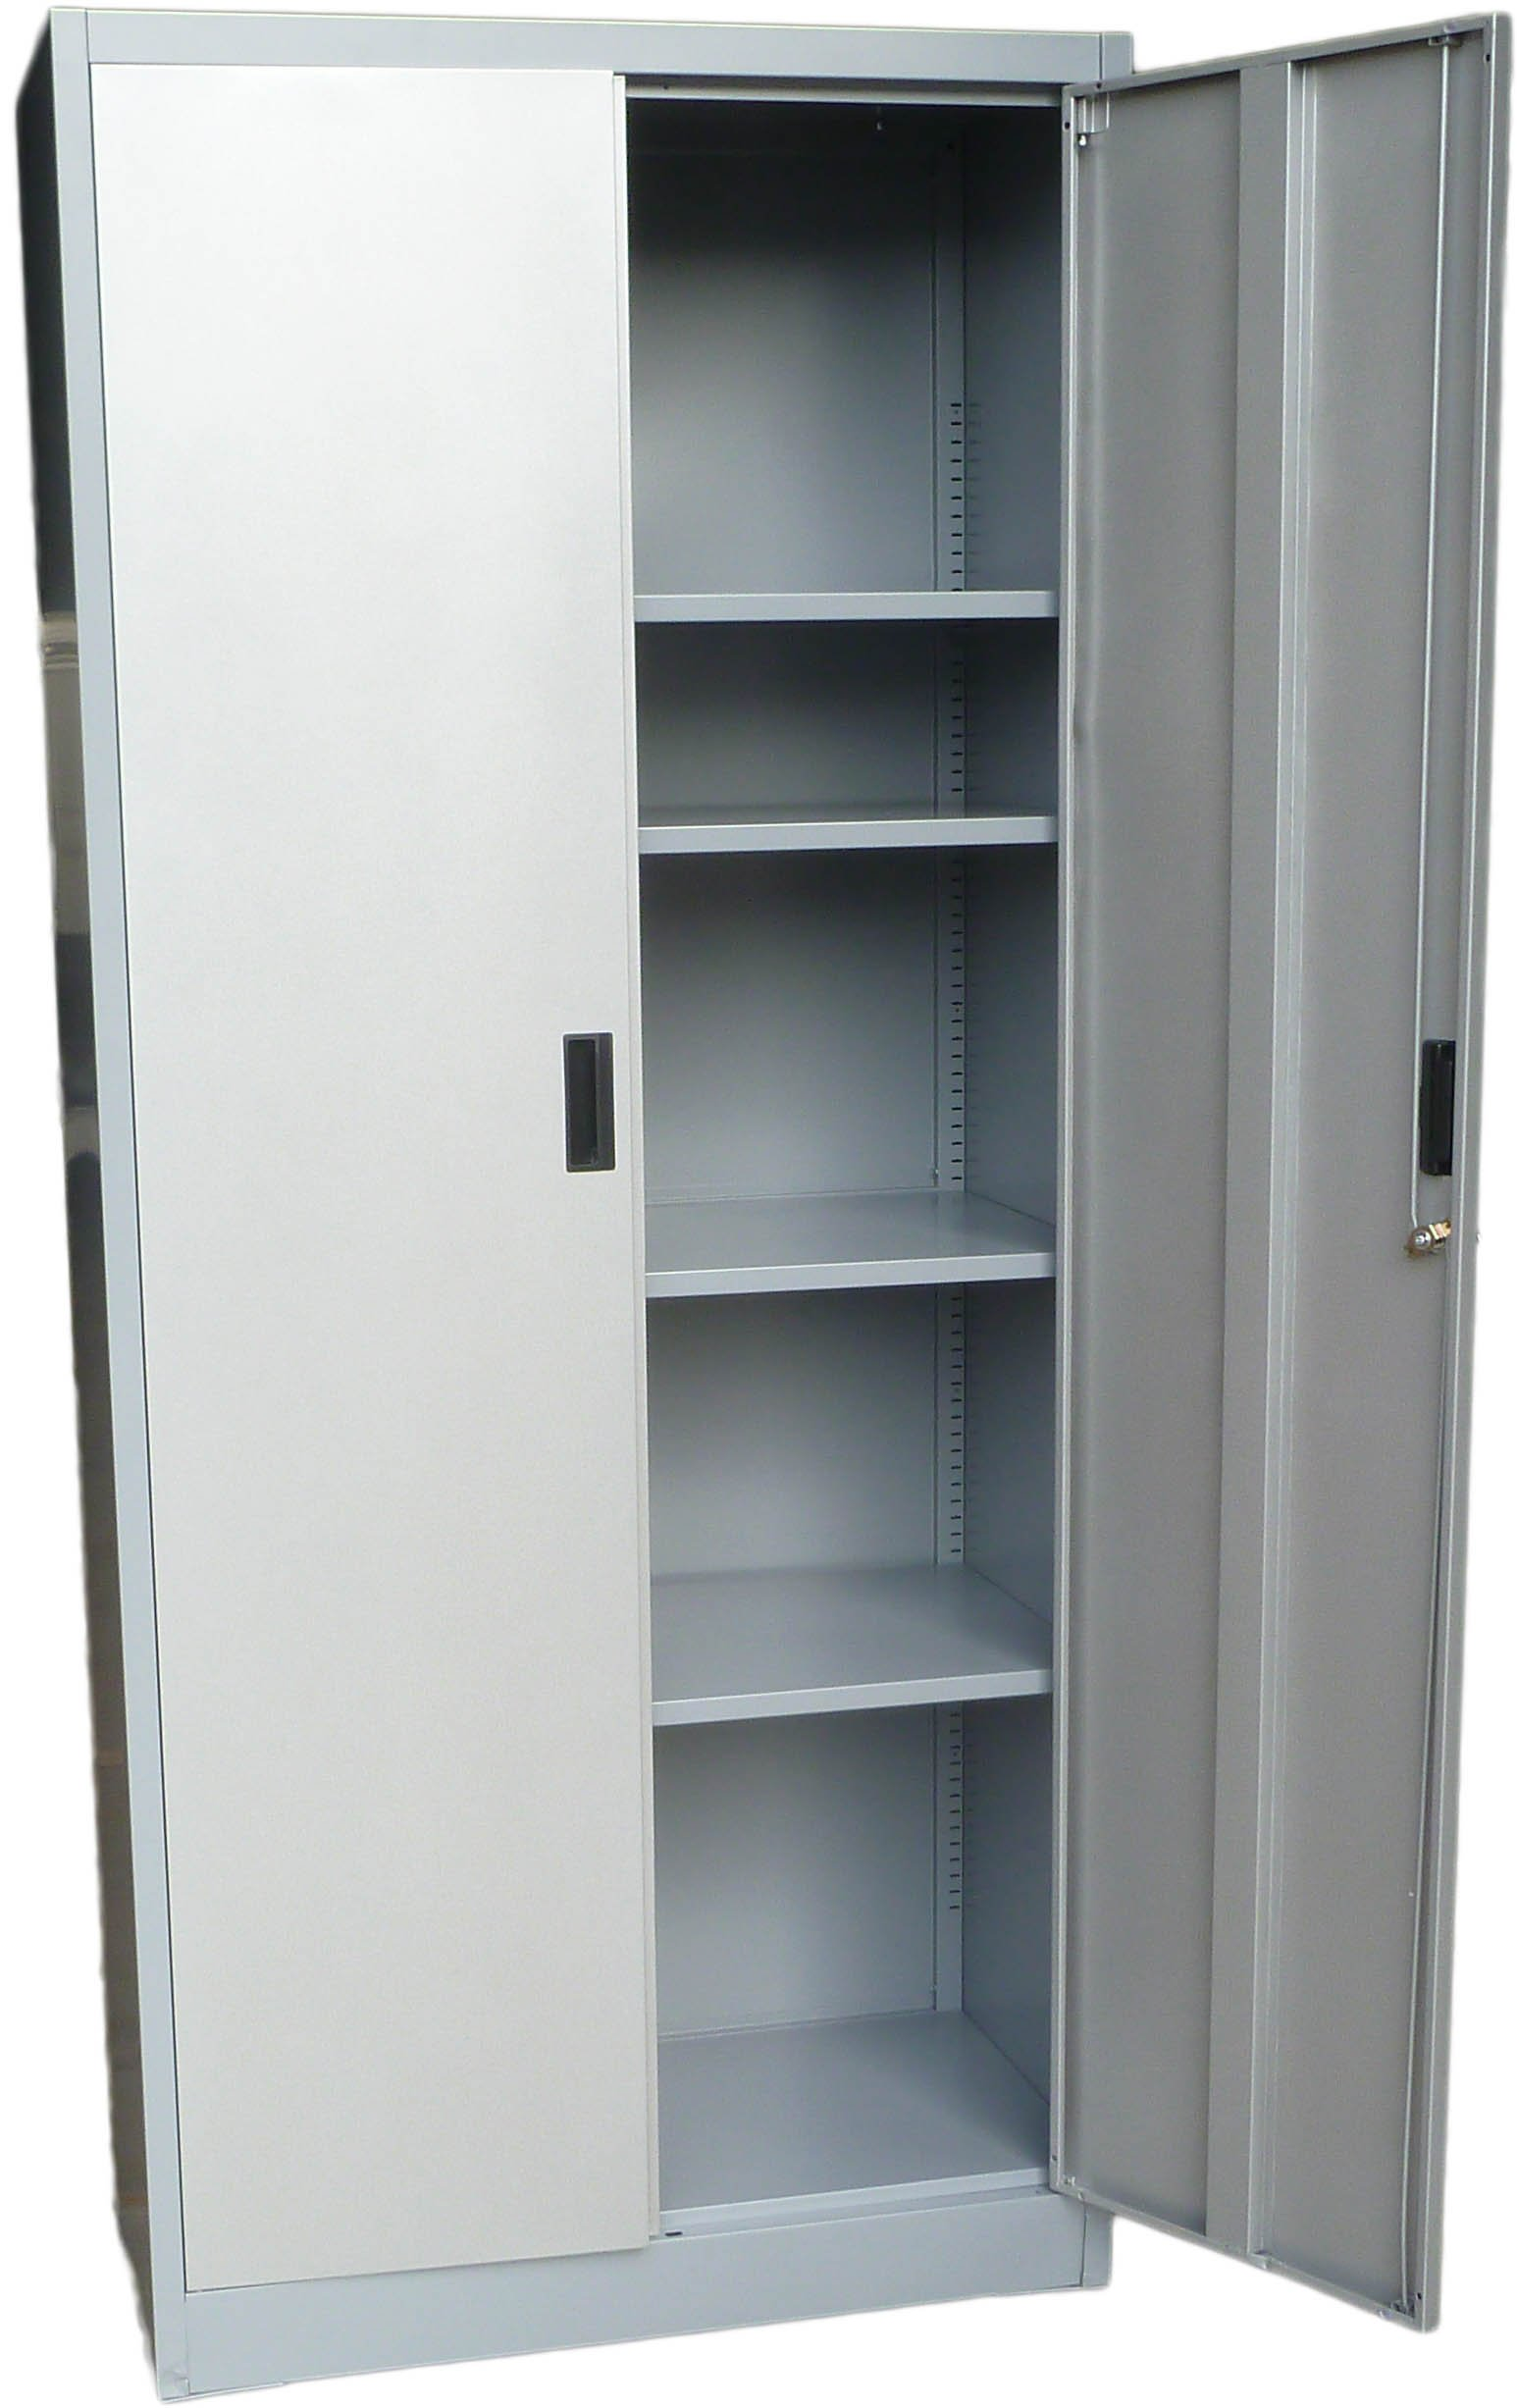 Fedmax Steel Storage Cabinet 71'' Tall, Lockable Doors and Adjustable Shelves, (Choose Color) 70.86'' Tall x 31.5'' W x 15.75'' D (Gray) by Fedmax